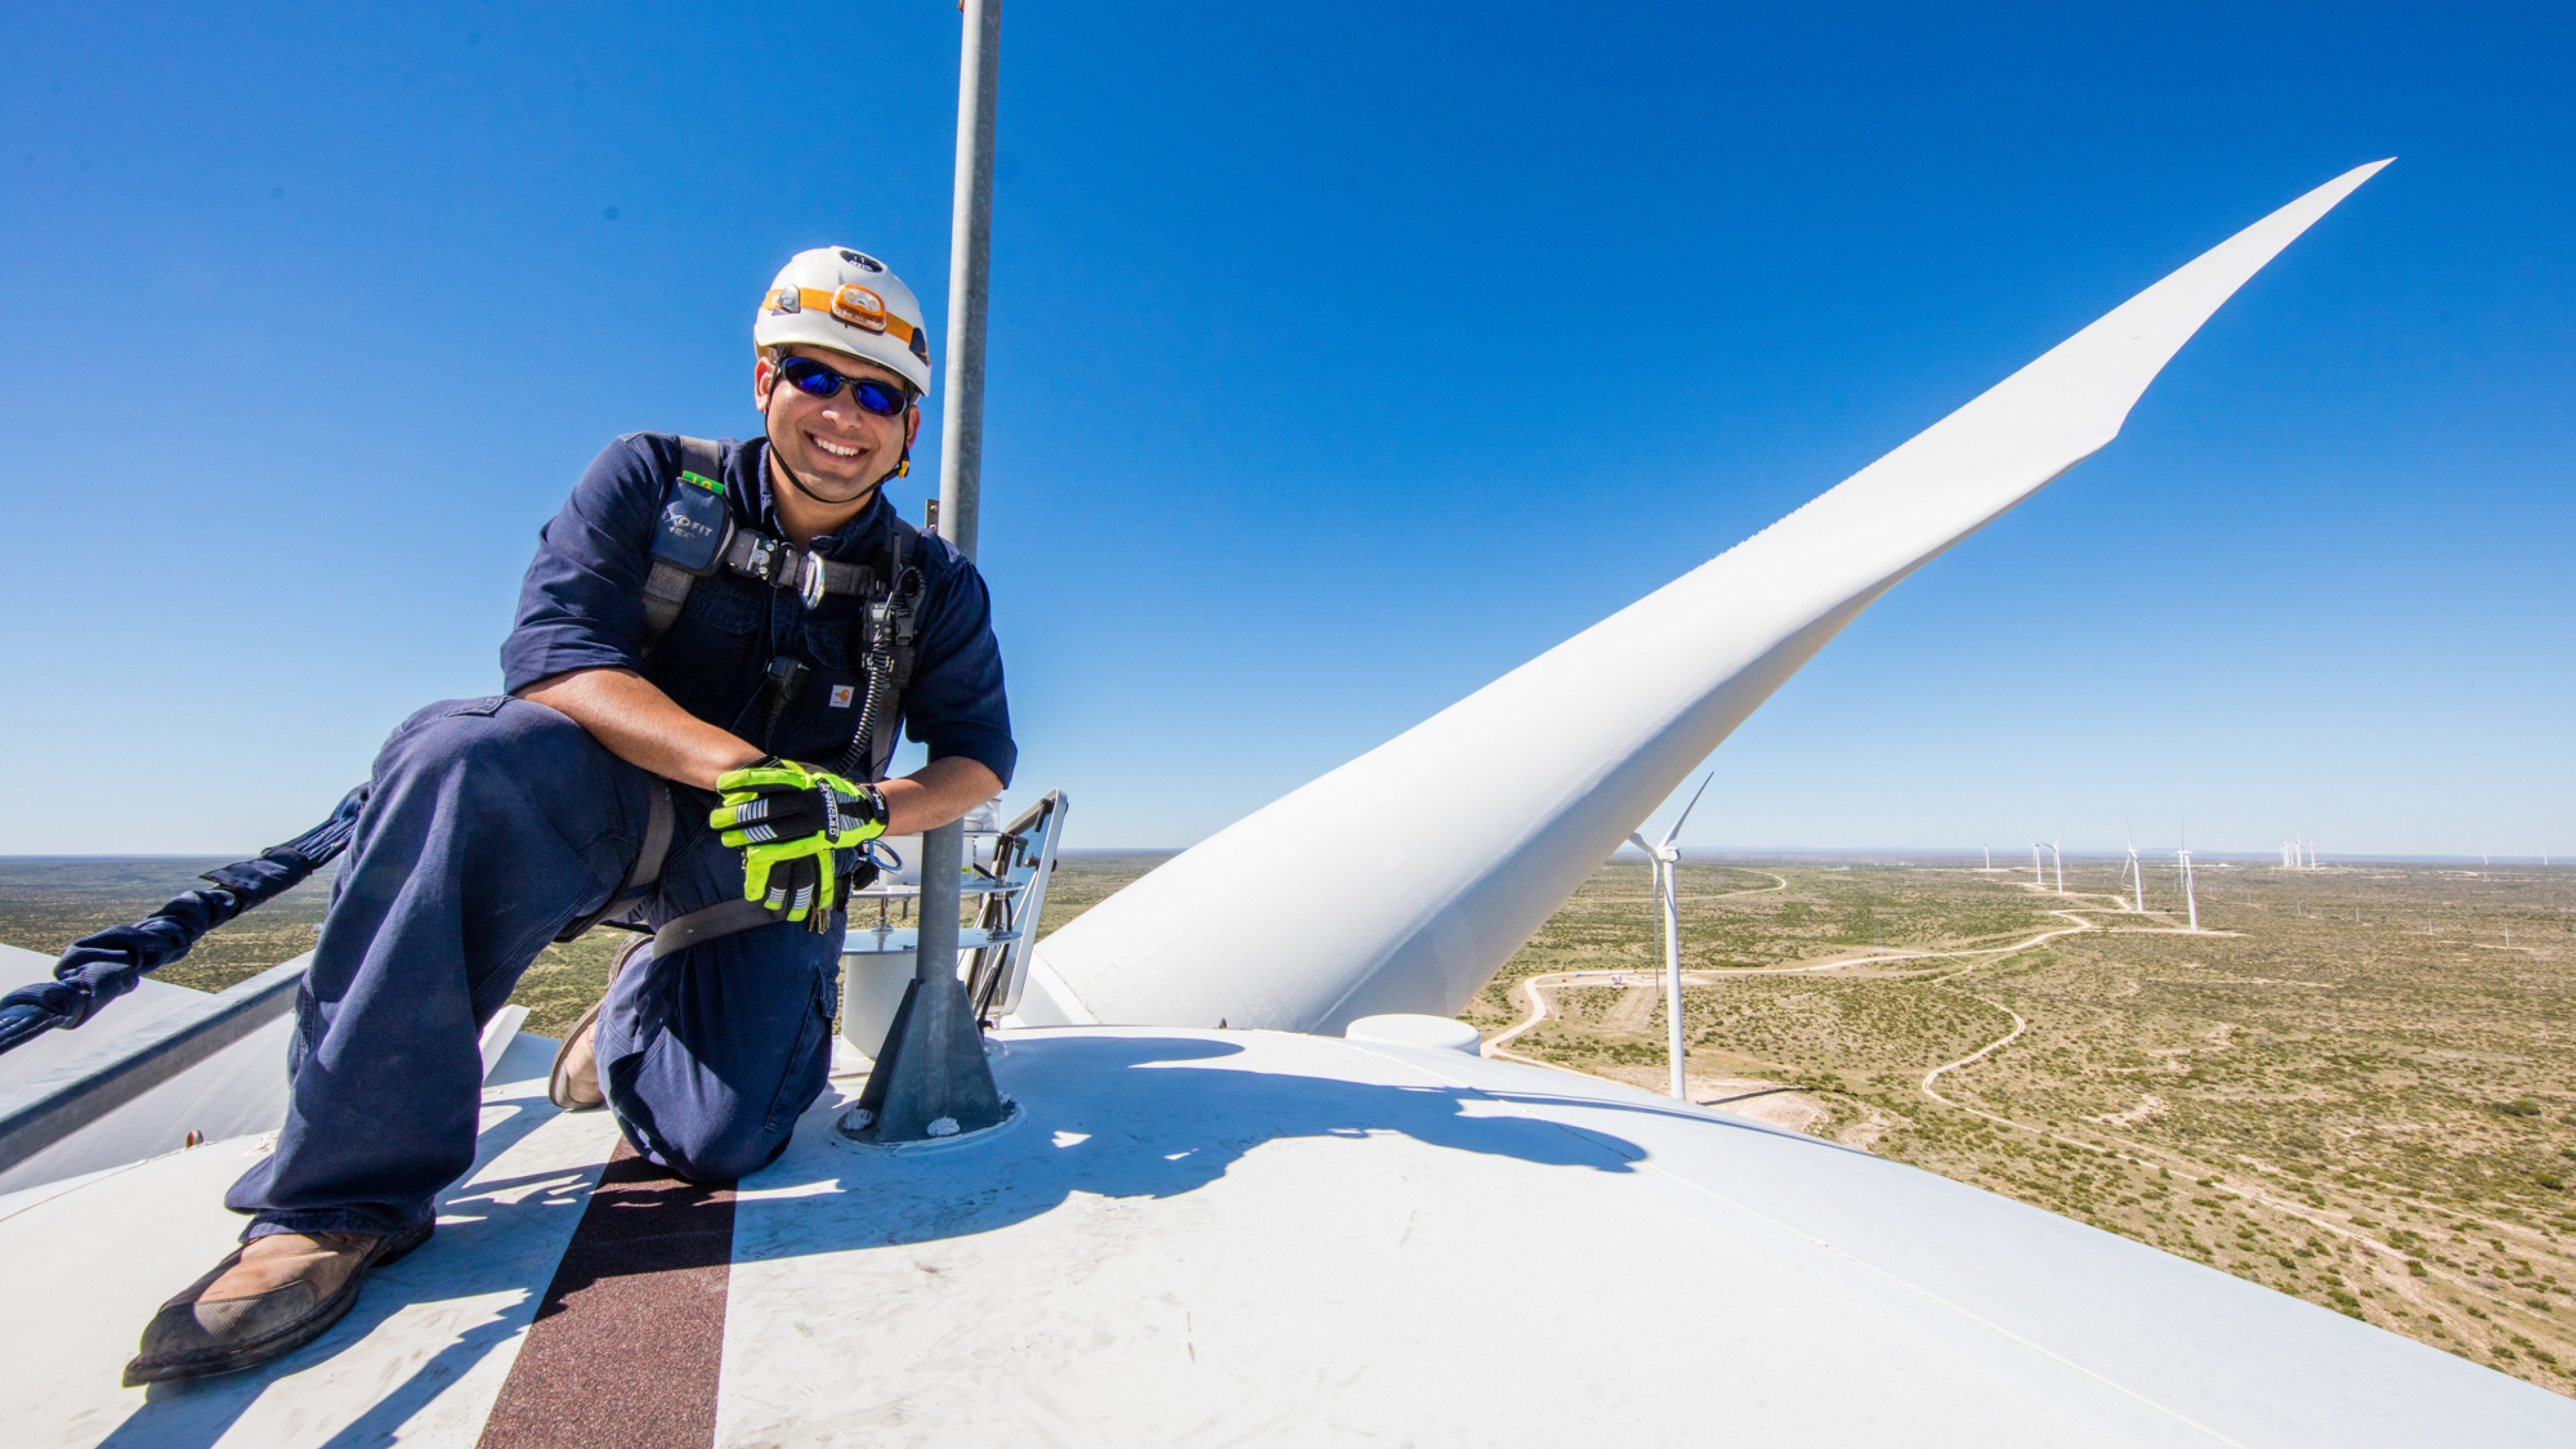 BP facility manager on a wind turbine in Sherbino 2 wind farm, West Texas, US